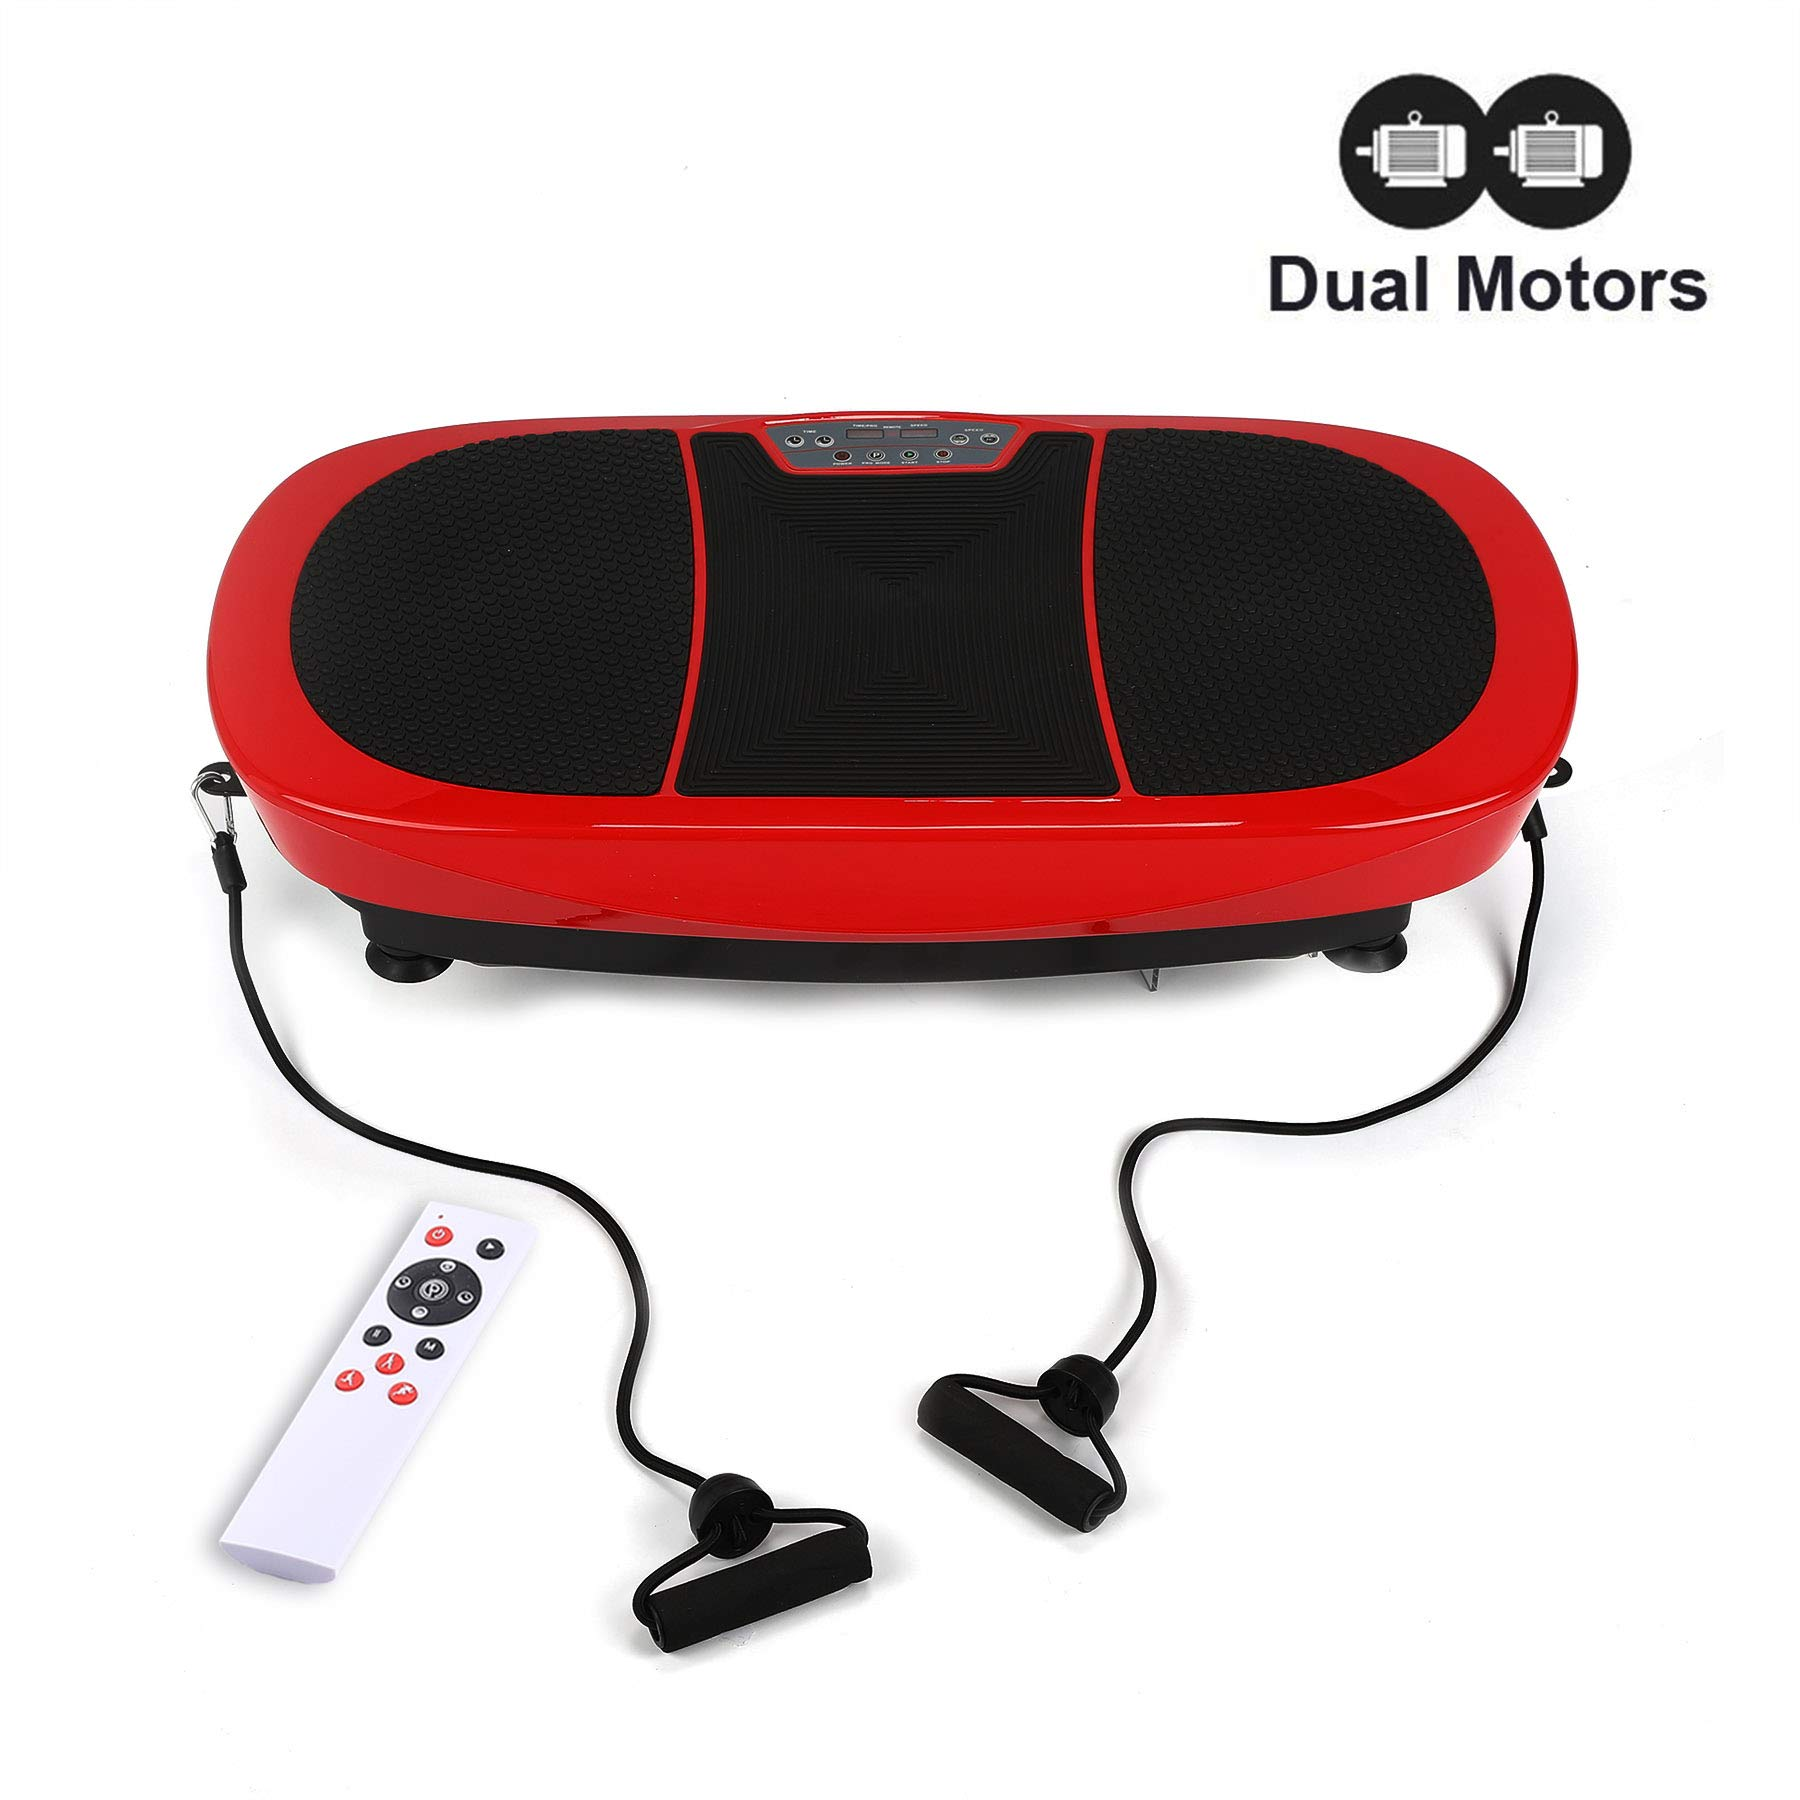 Z ZELUS 3D Fitness Whole Body Vibration Platform Machine - 400W Dual Motors Vibration Plate Crazy Fit Massage Exercise Machine with Remote Control and Resistance Bands (Red)